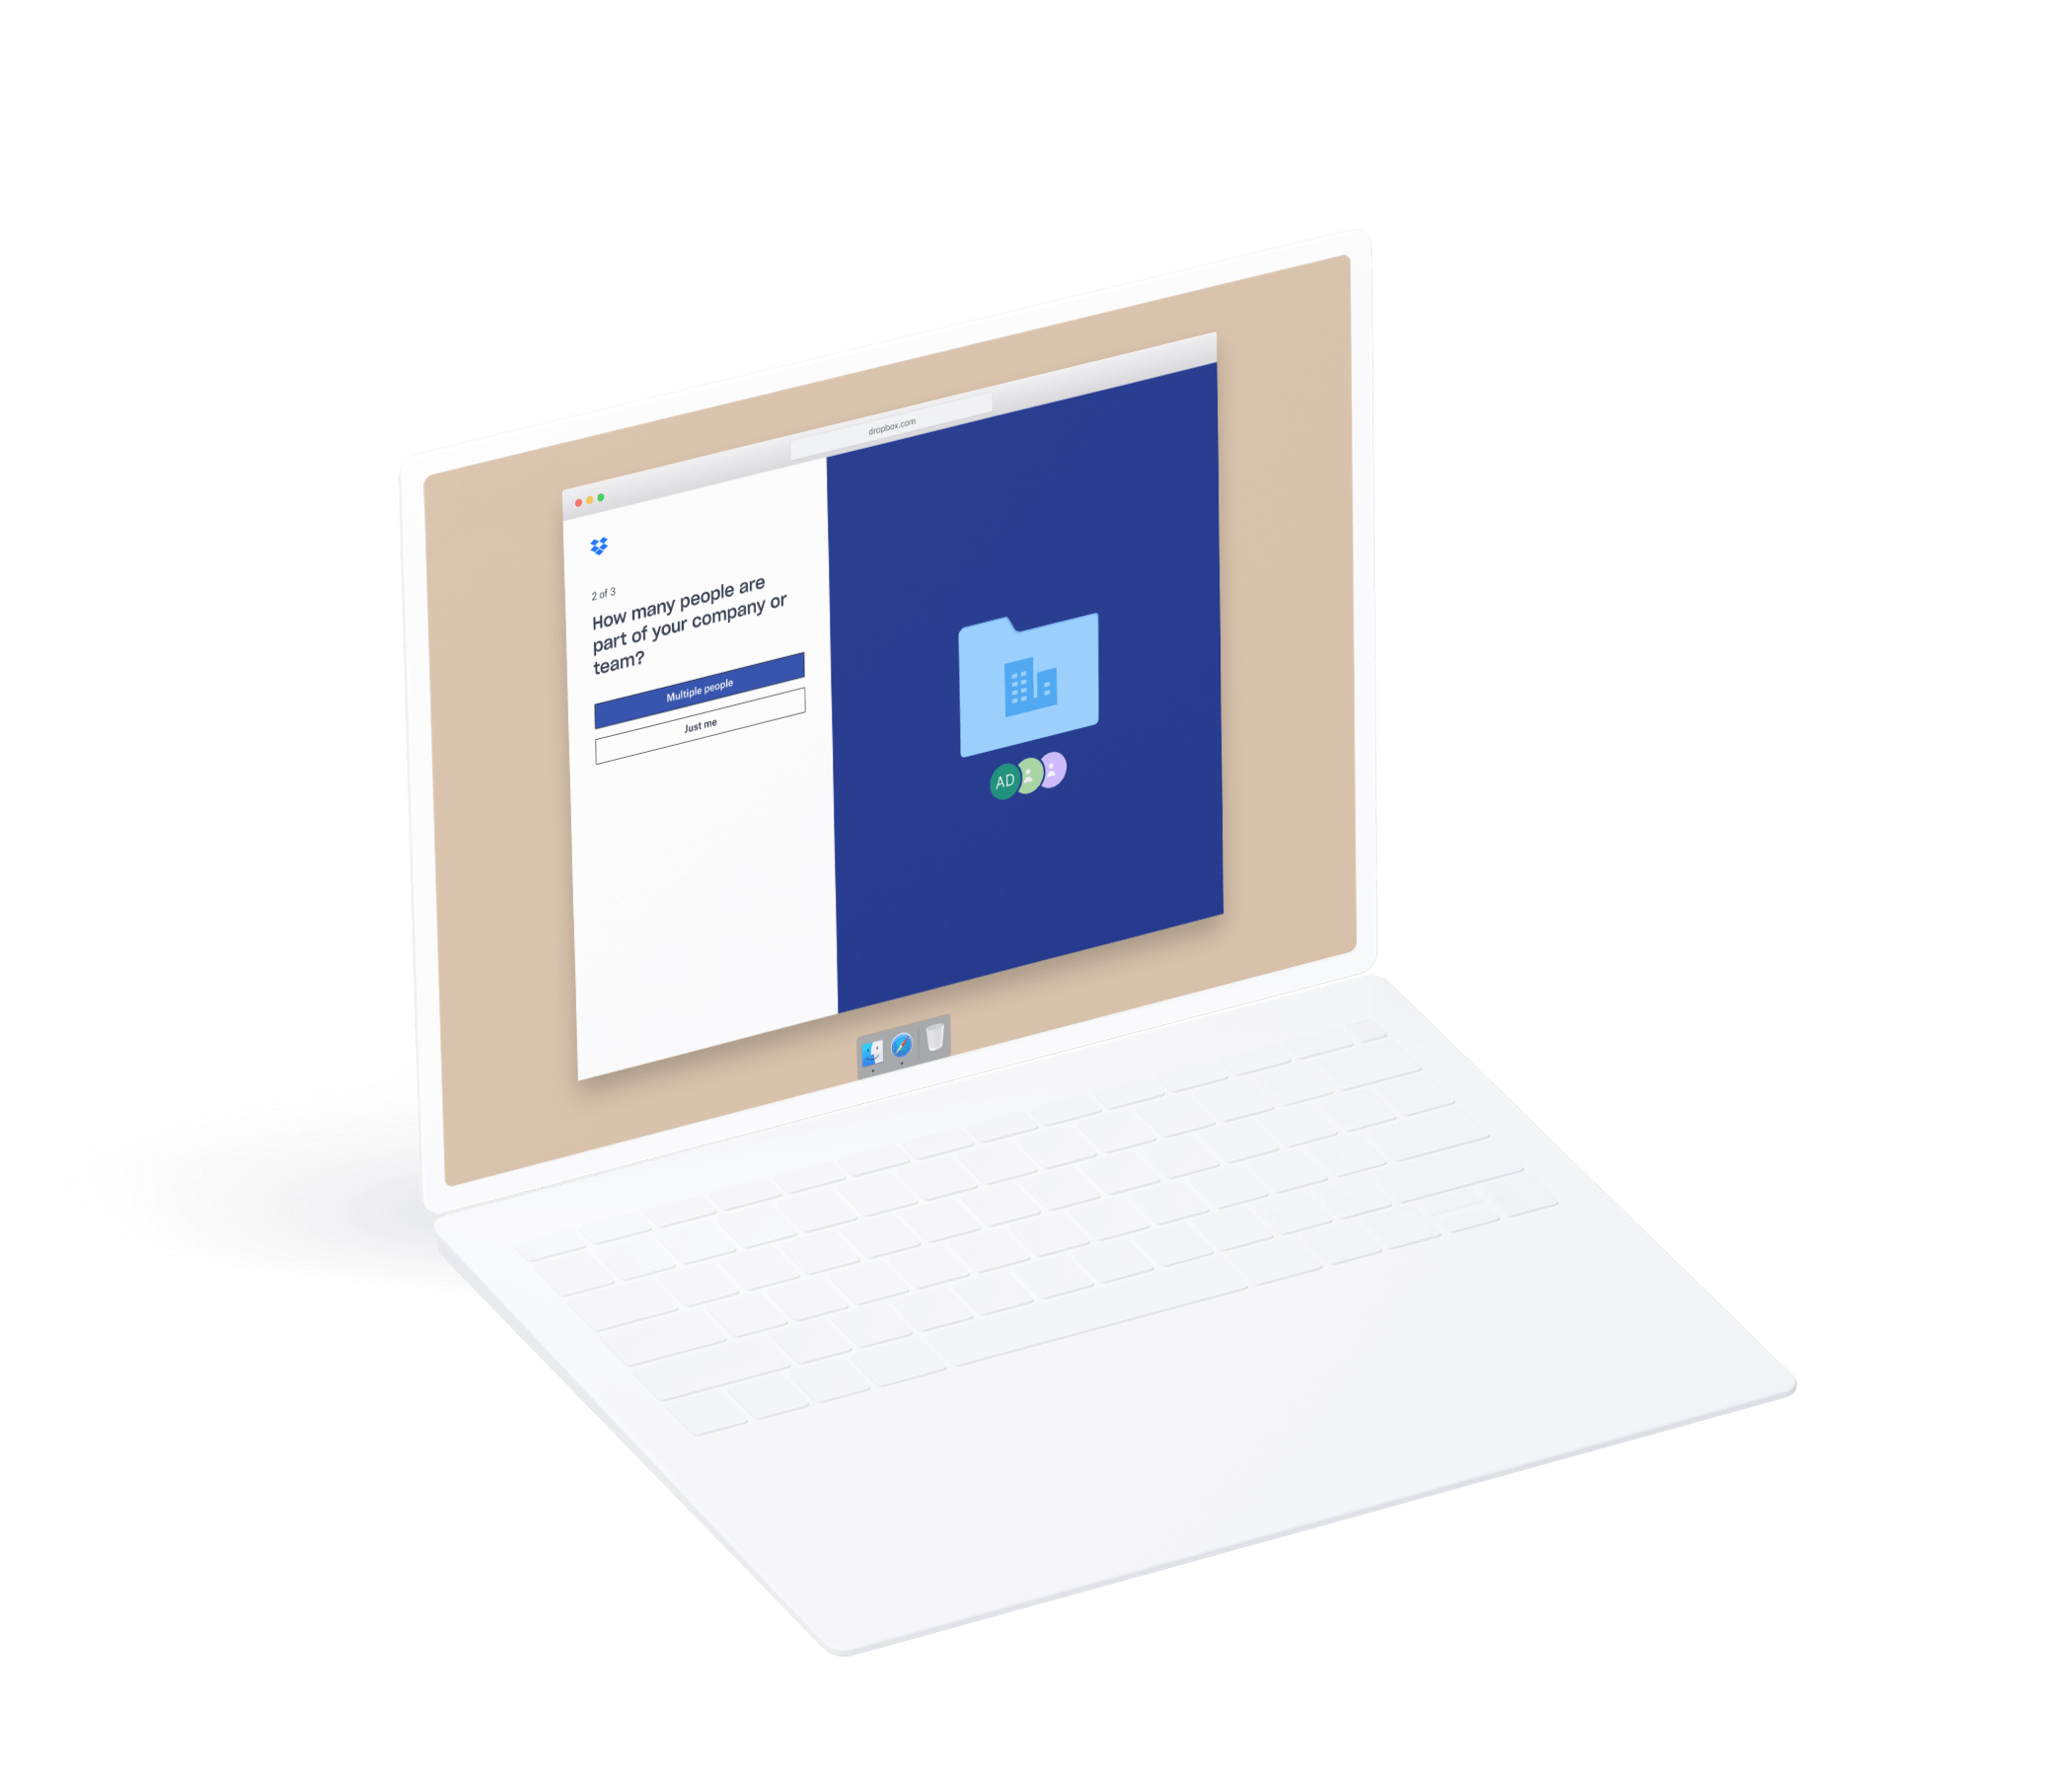 Laptop mockup showing the New Dropbox Business Onboarding UI